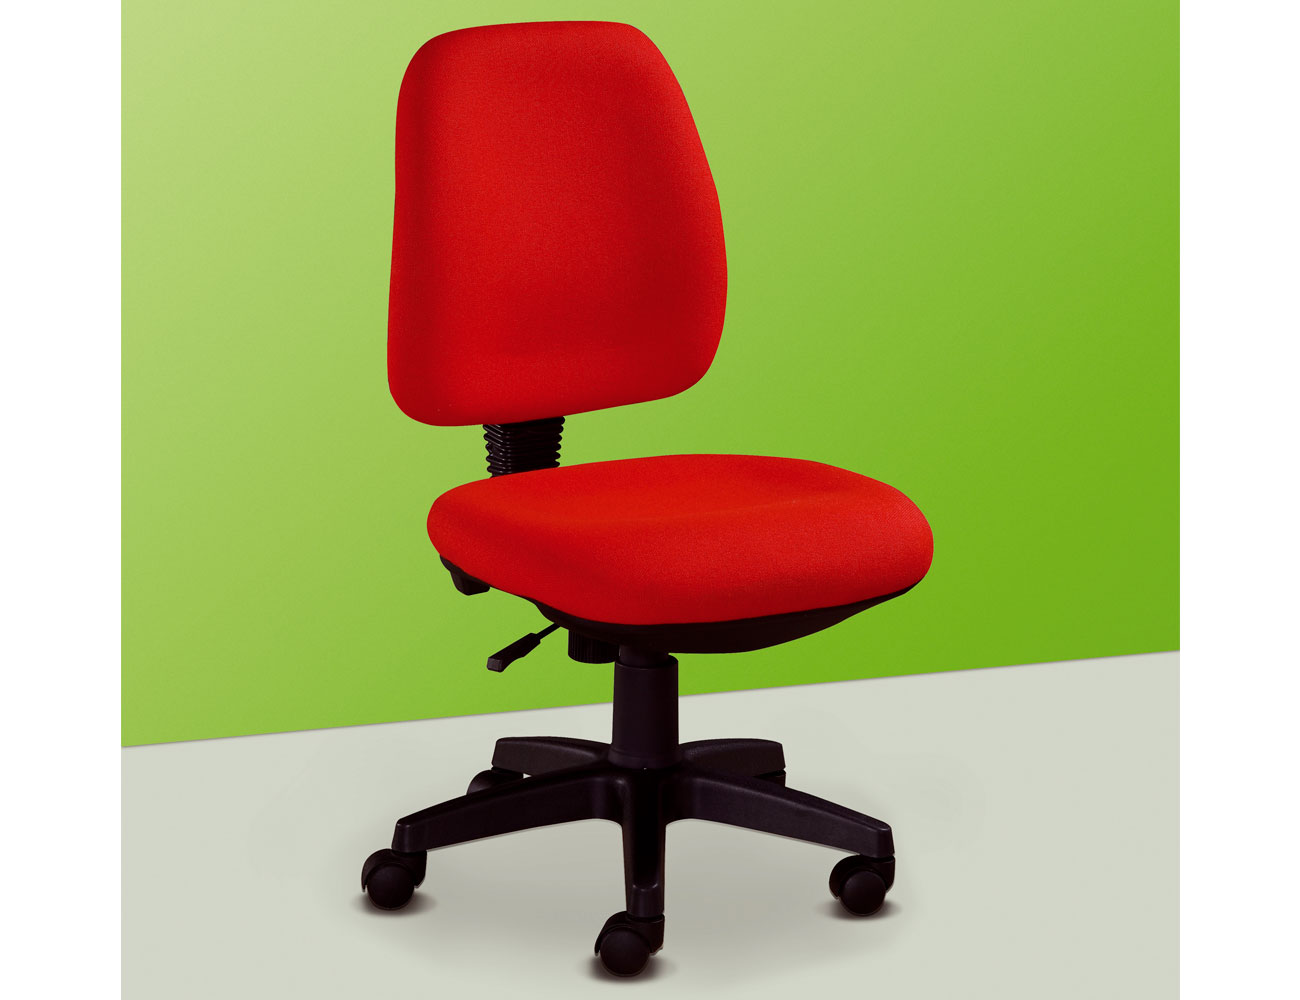 Silla de oficina elevable en color rojo 19858 factory for Sillas para escritorio easy